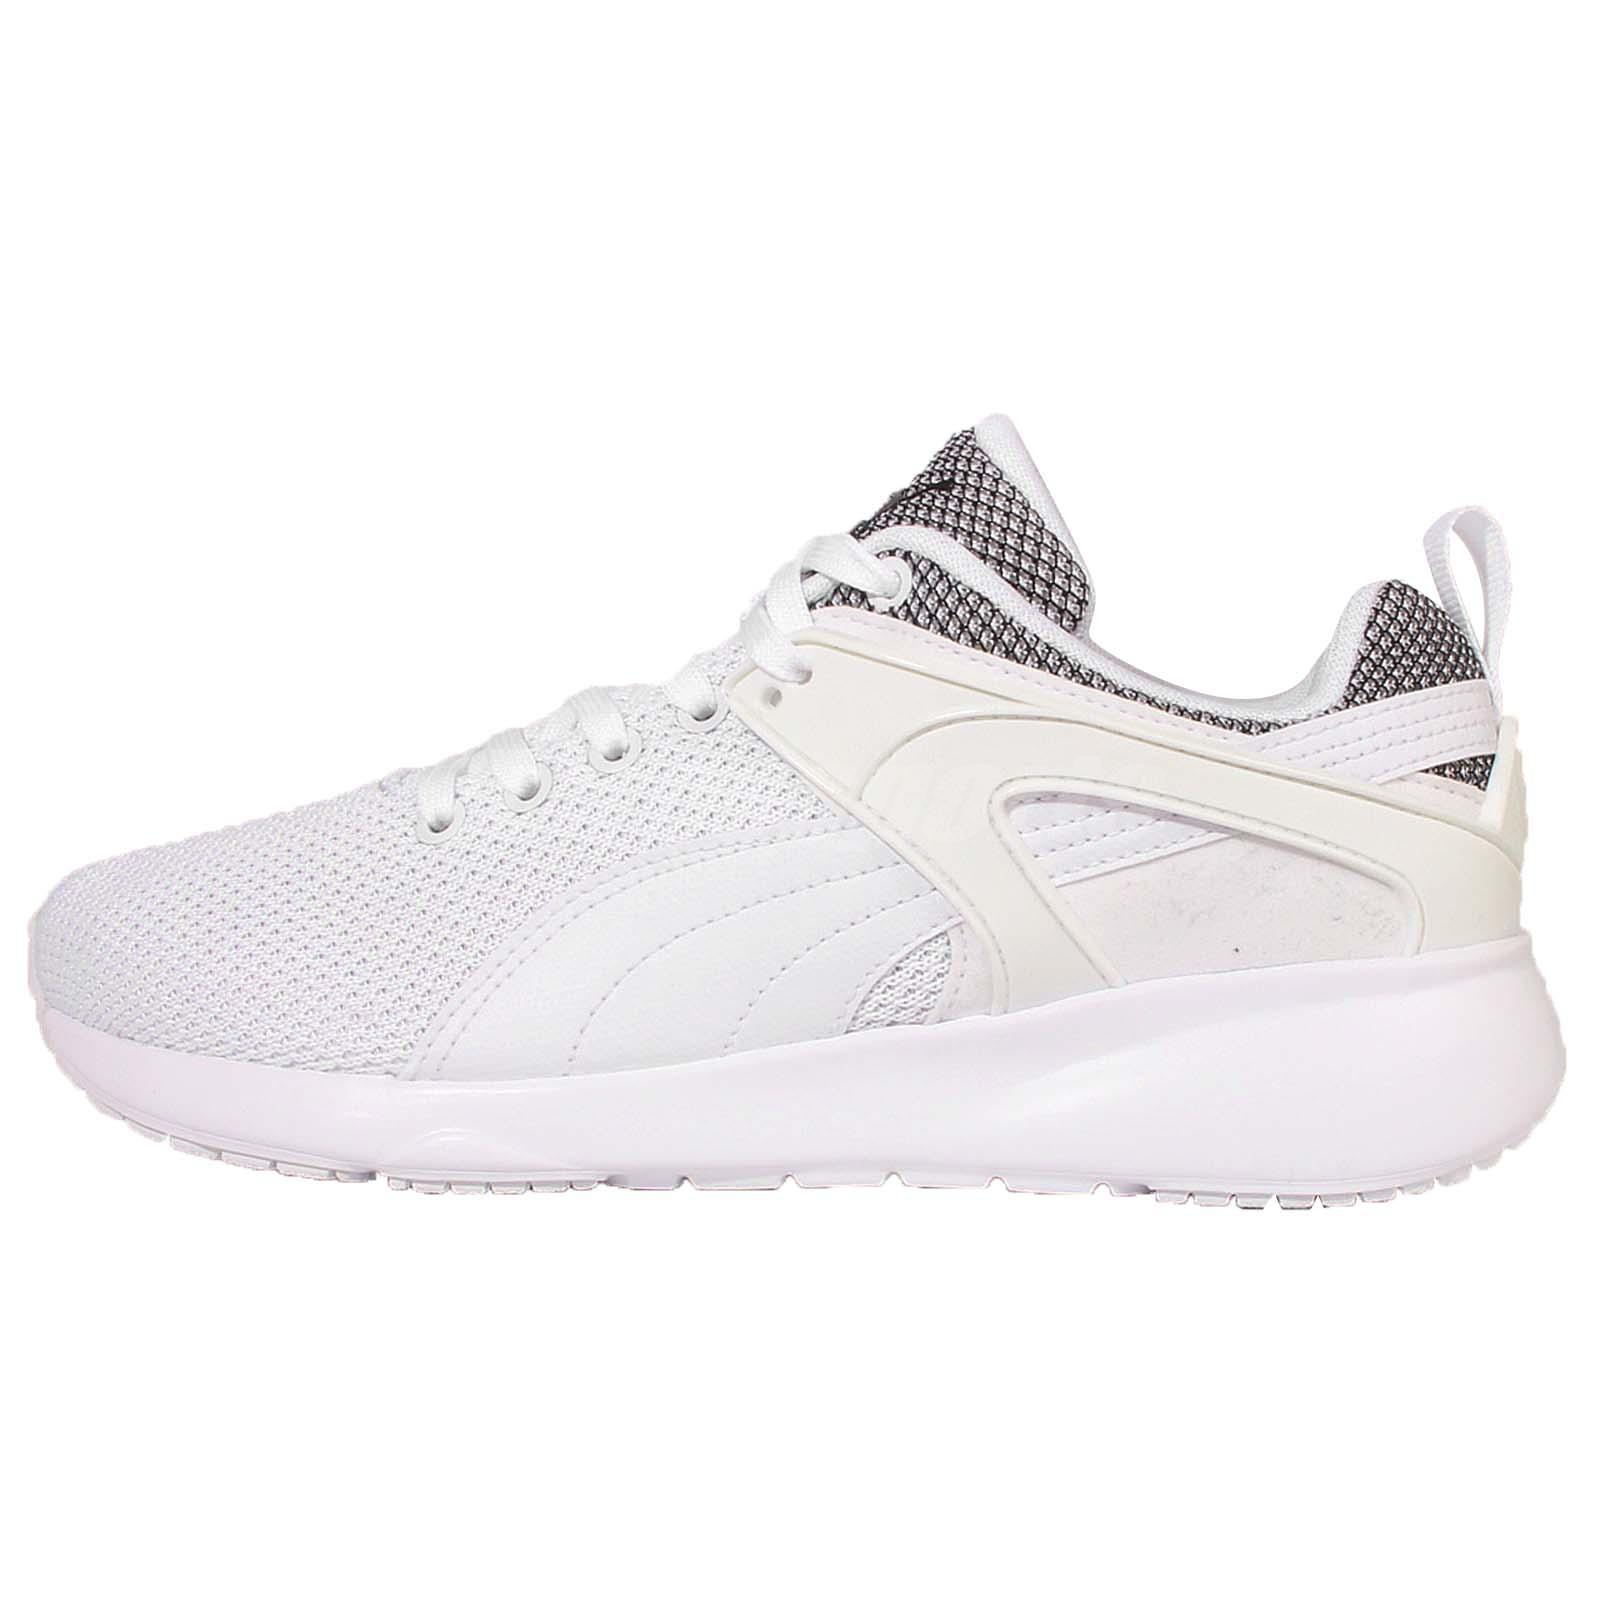 Puma Aril Blaze White Black Mens Running Shoes Sneakers Trainers 359792-05